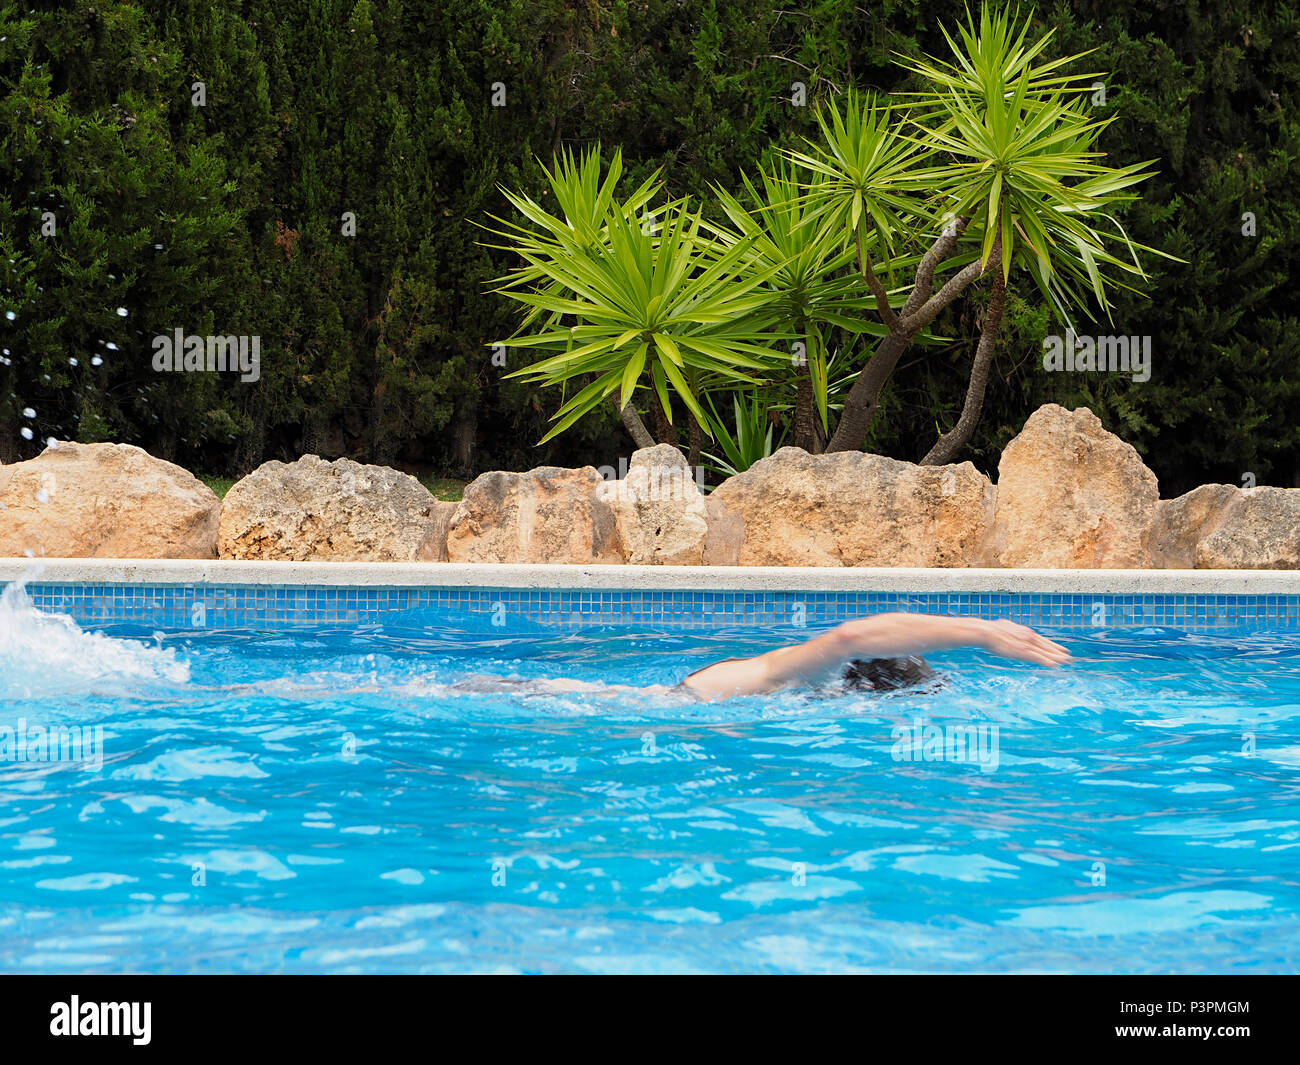 Woman swimming in pool - Stock Image